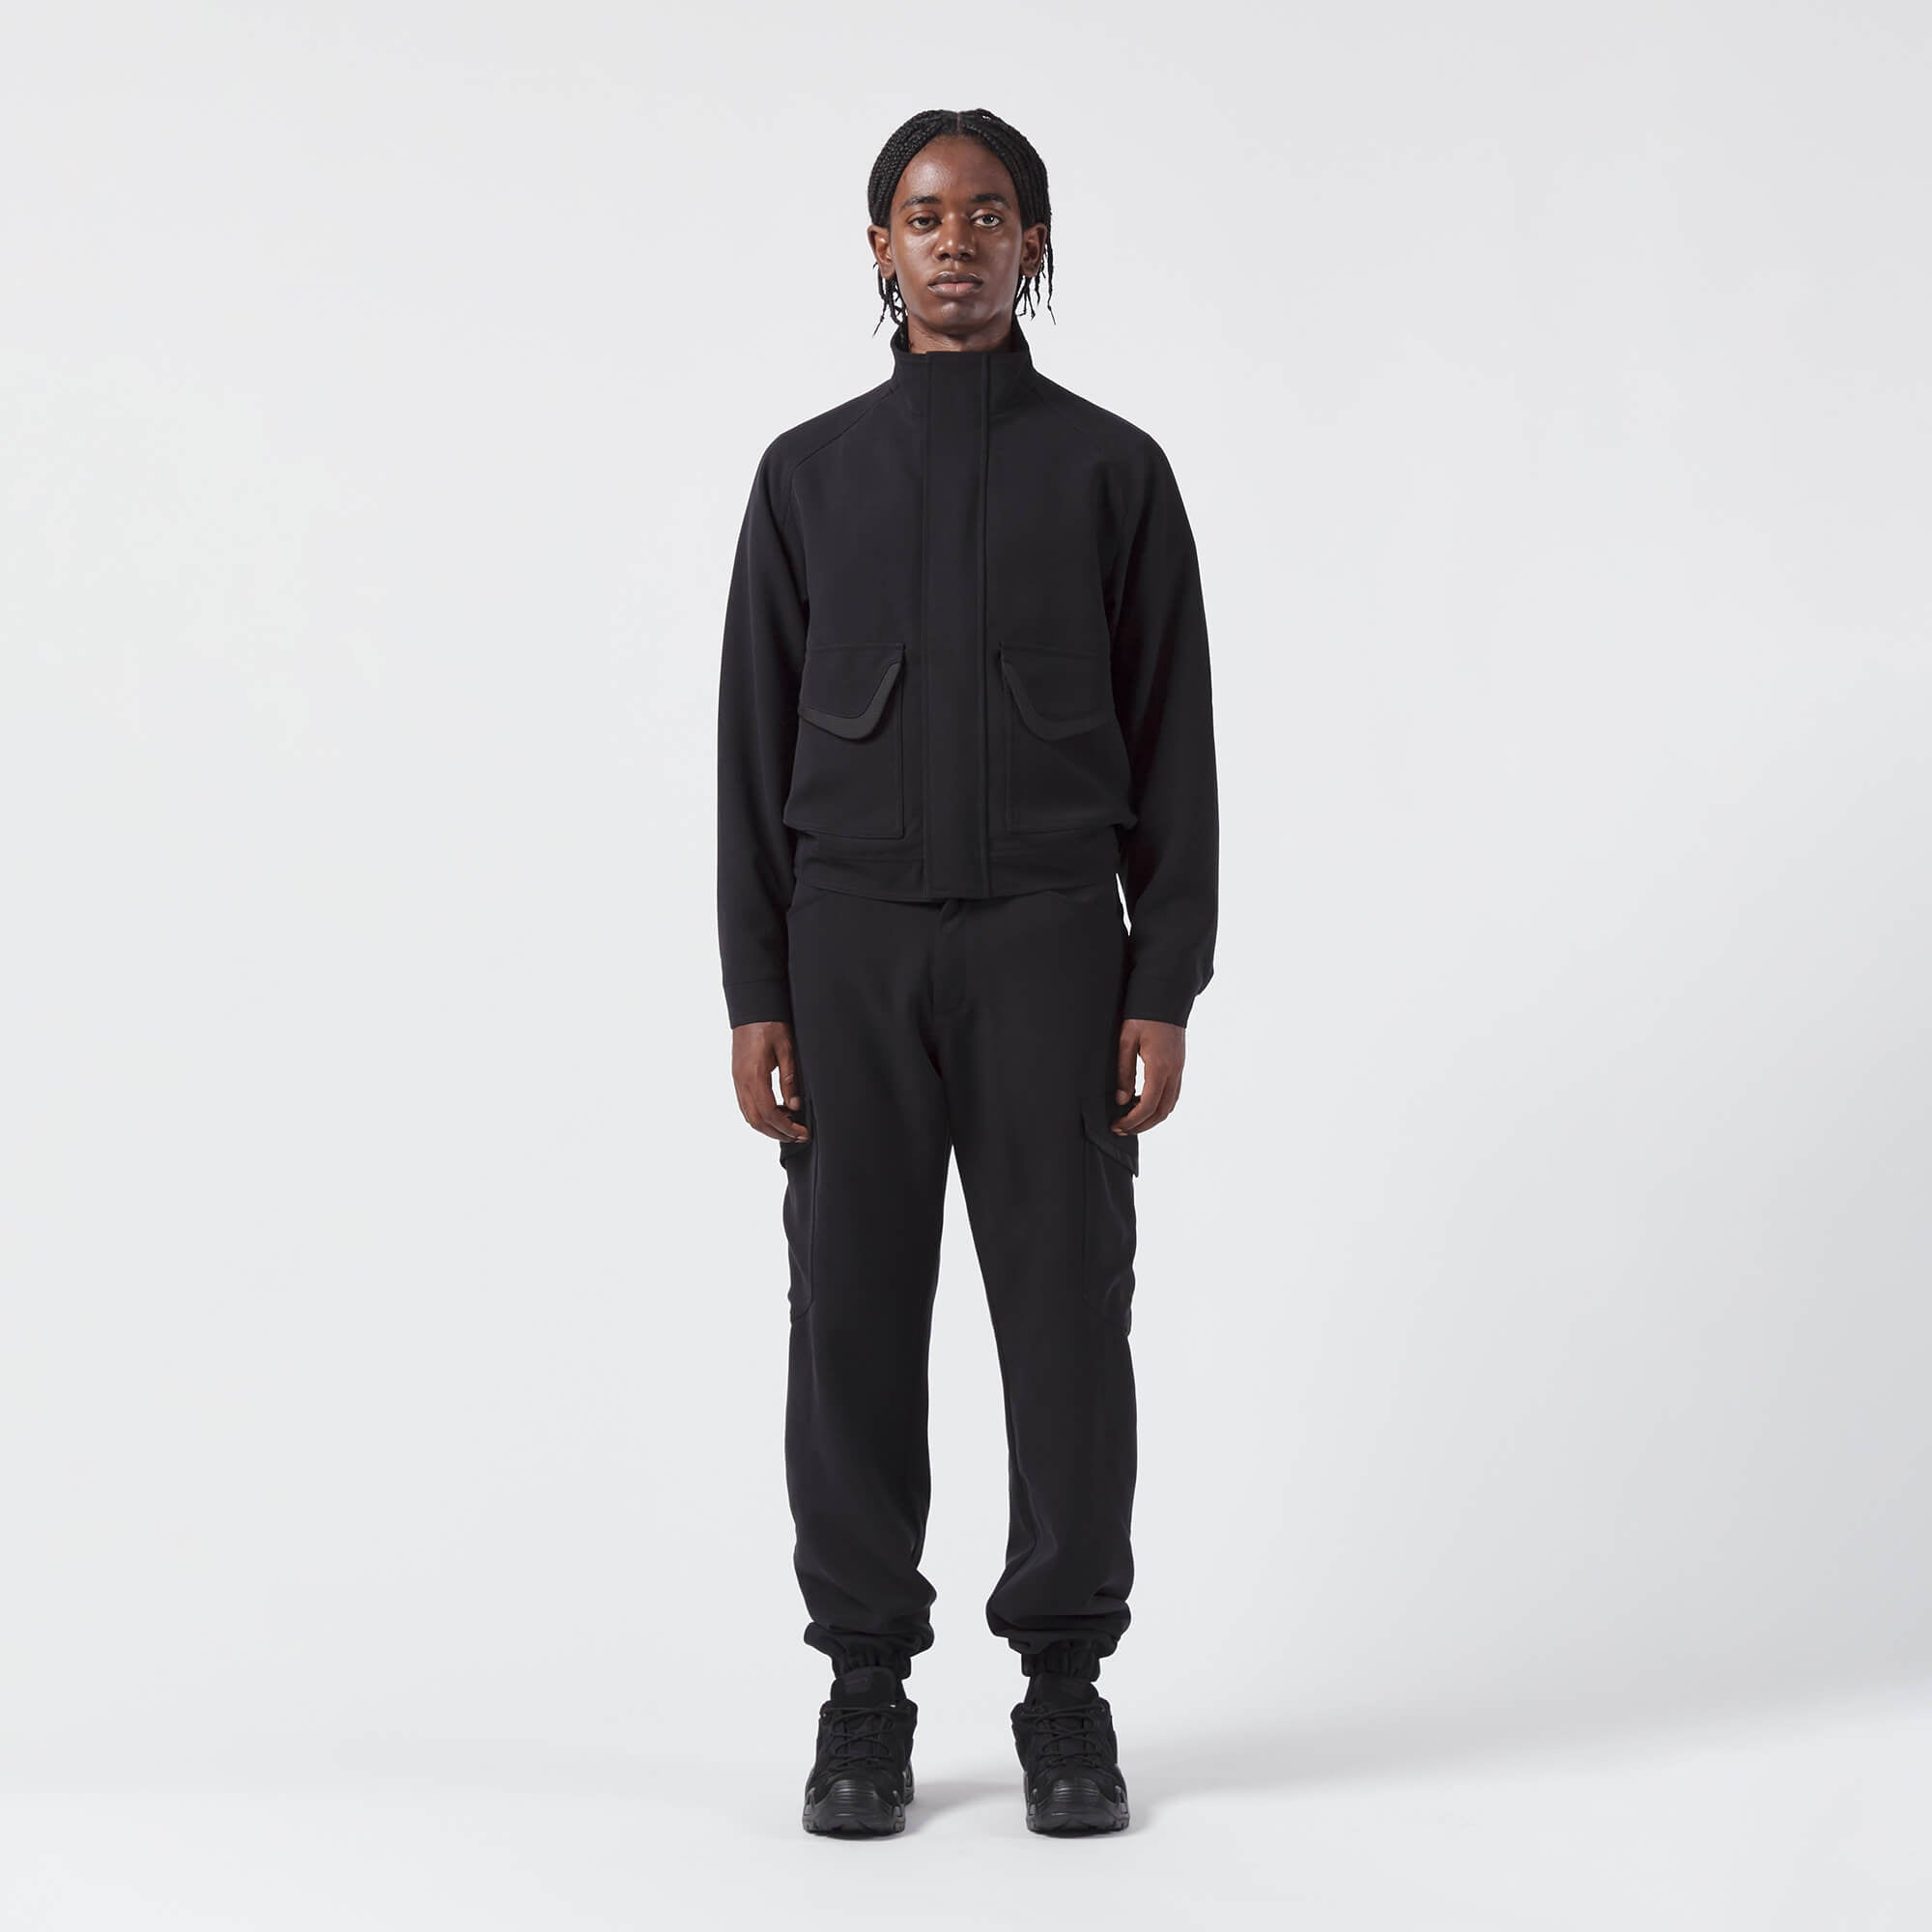 AFFIX WORKS AFFXWRKS MOBILISATION JACKET BLACK WEB EXCLUSIVE